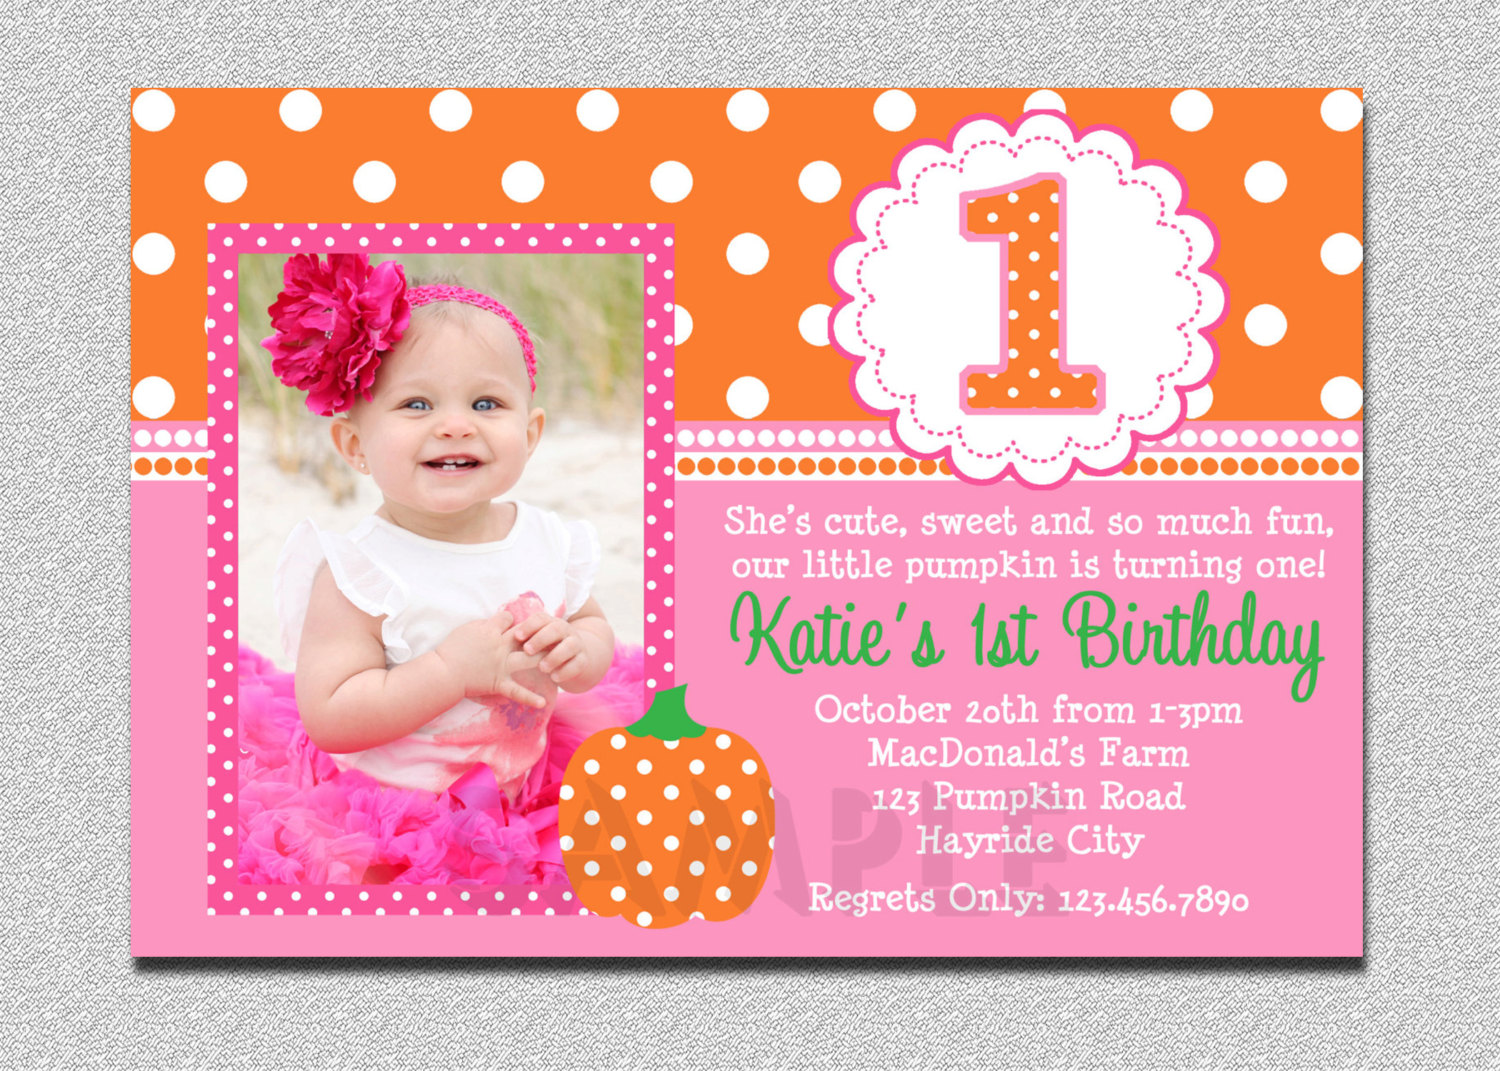 best birthday invitation card design ; 1St-Birthday-Invitations-Girl-is-the-best-way-to-you-to-get-isnpired-for-your-Birthday-invitation-design-1